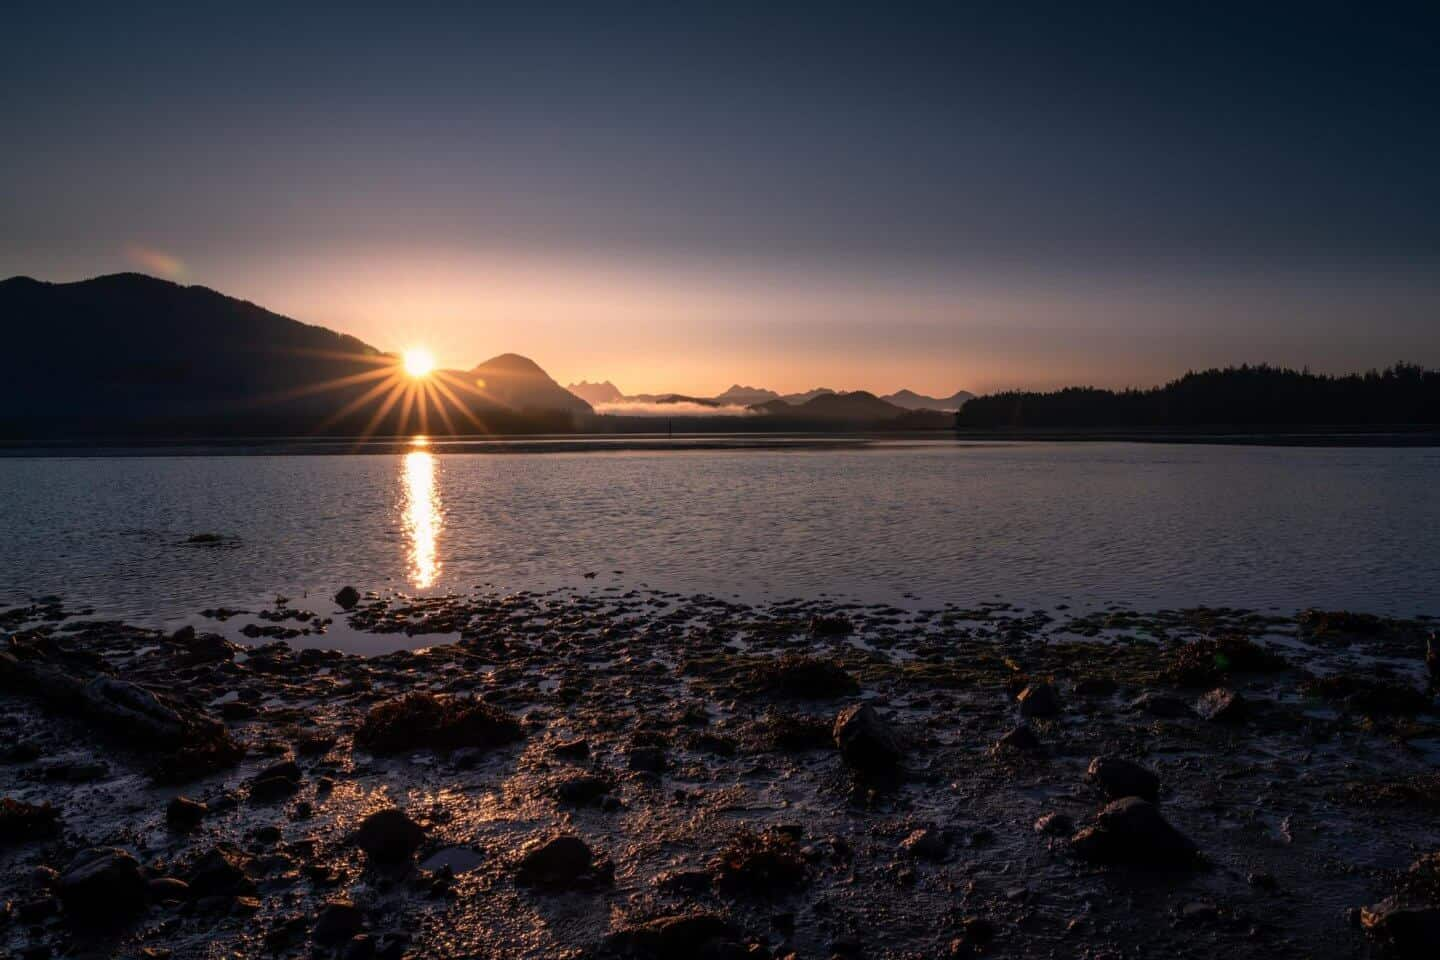 Sunrise from the Tofino Mud Flats